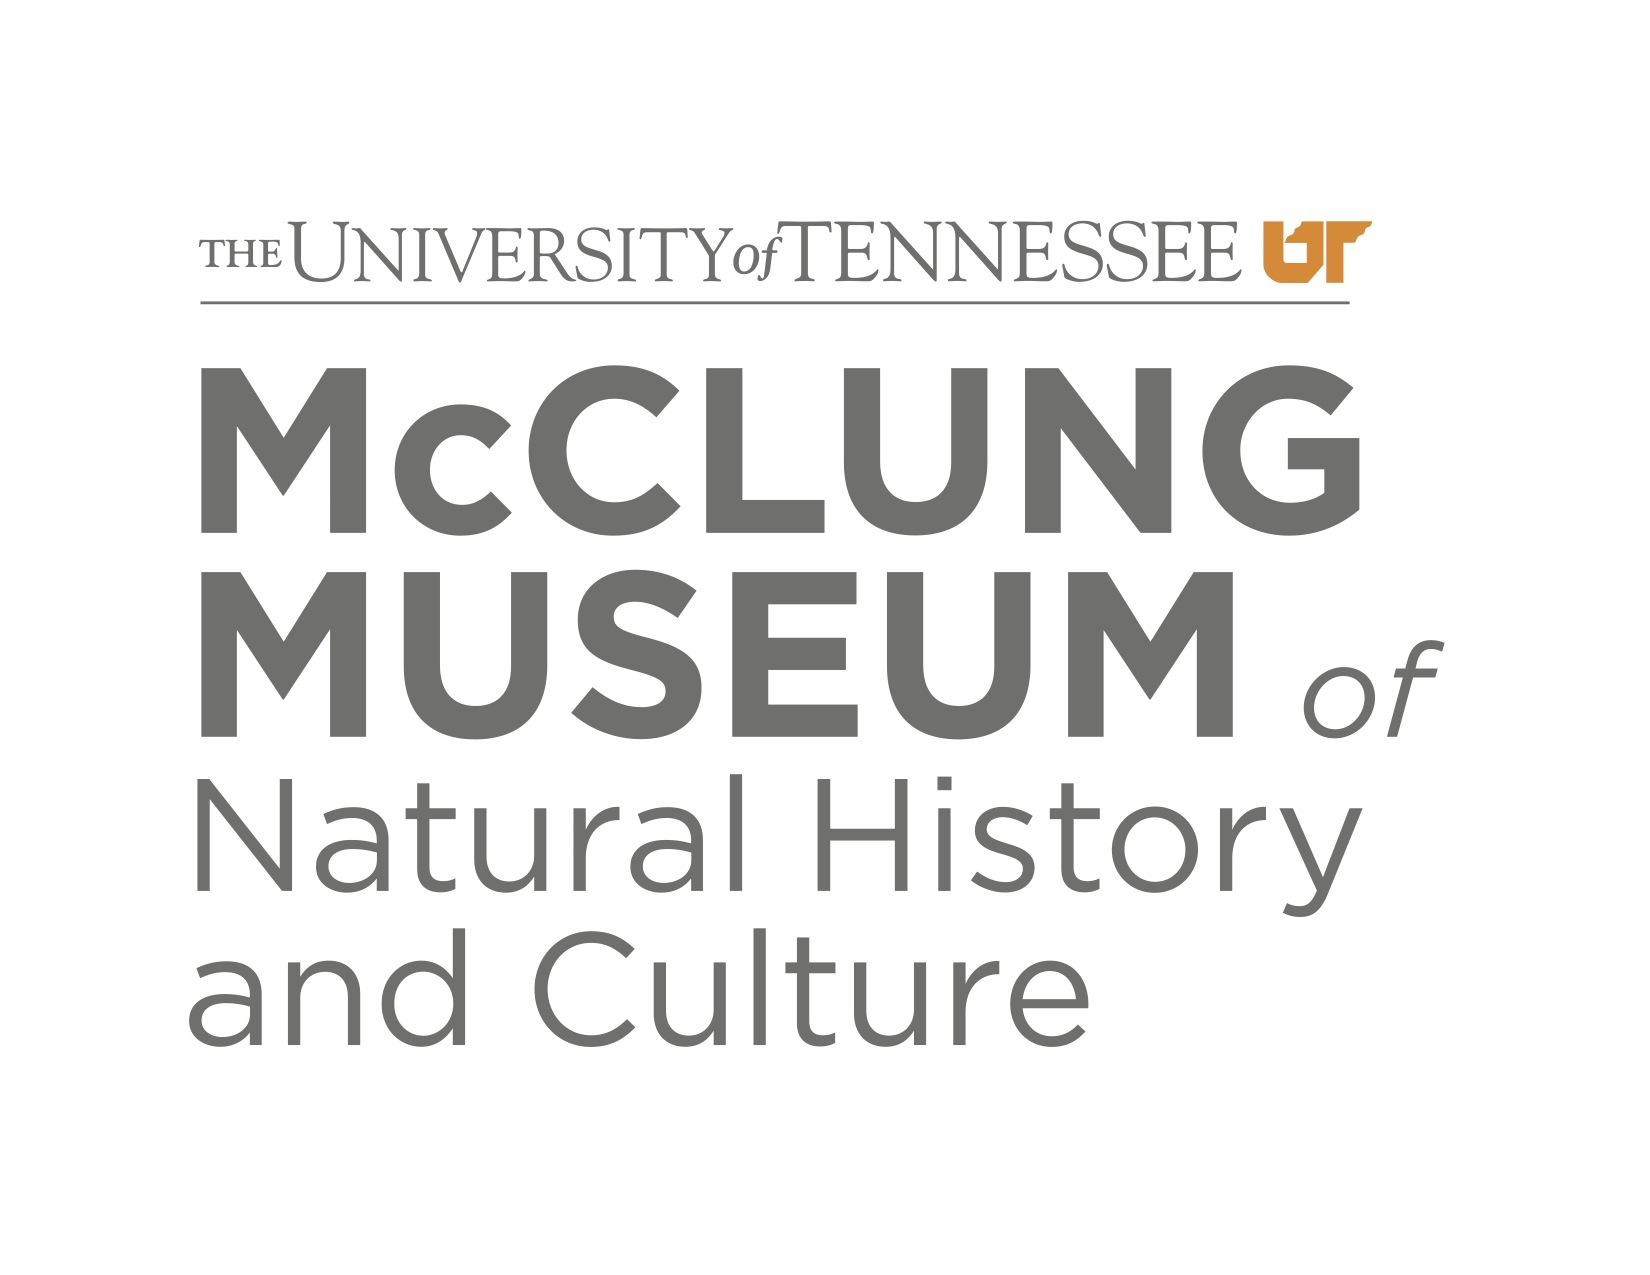 McClung Museum of Natural History and Culture logo